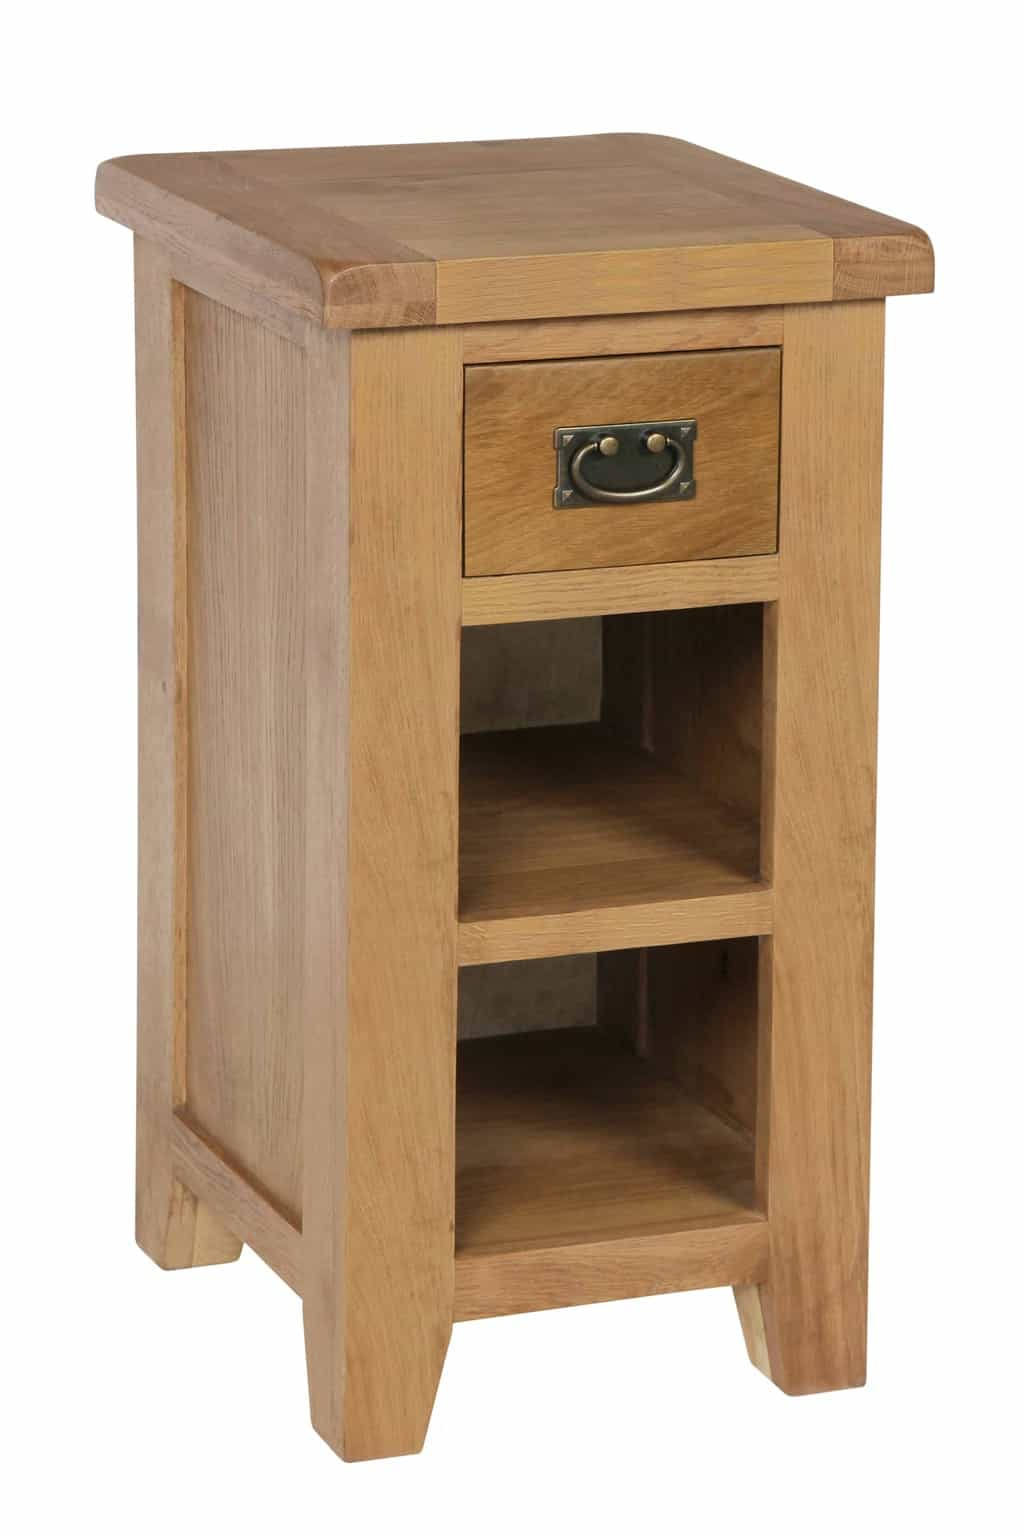 Shrewsbury solid chunky wood rustic oak side lamp table unit msl shrewsbury solid chunky wood rustic oak side lamp table unit aloadofball Image collections